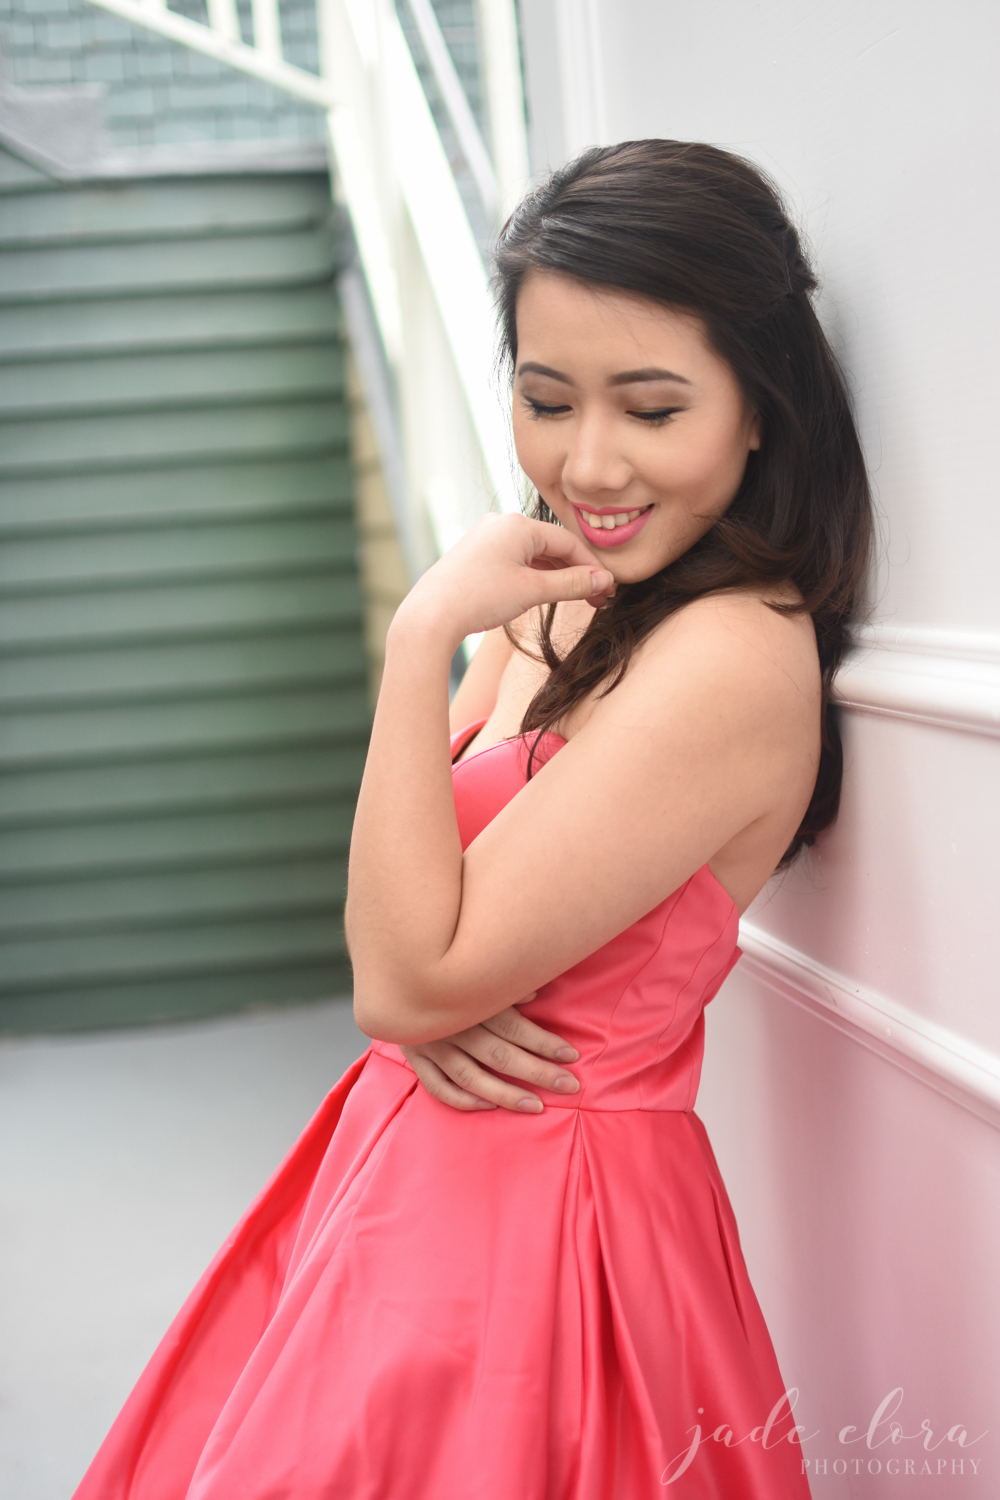 Hot Pink Dress Model Portrait